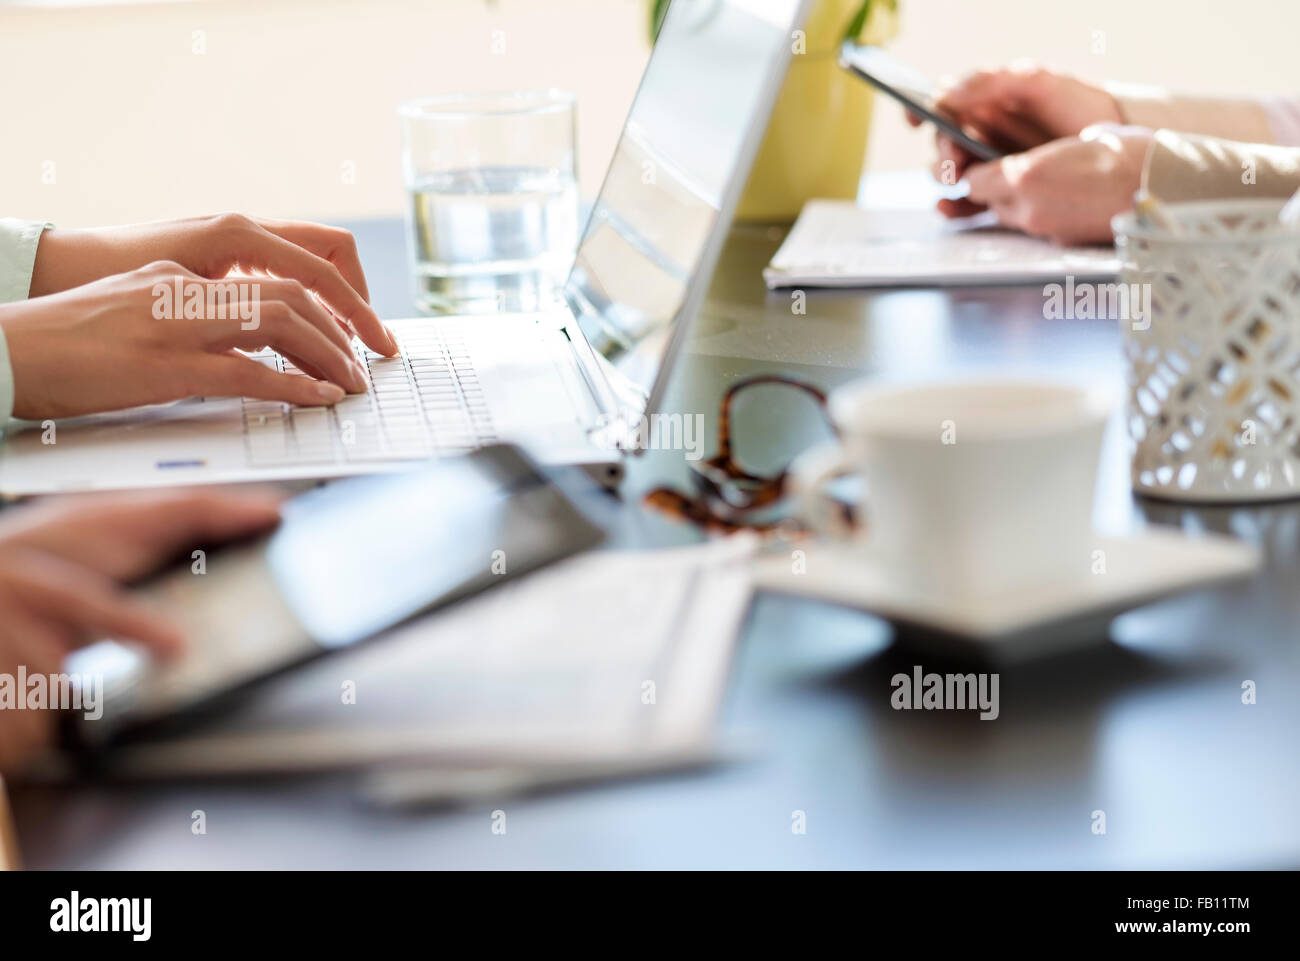 Hands using tablet pc, laptop and smart phone - Stock Image